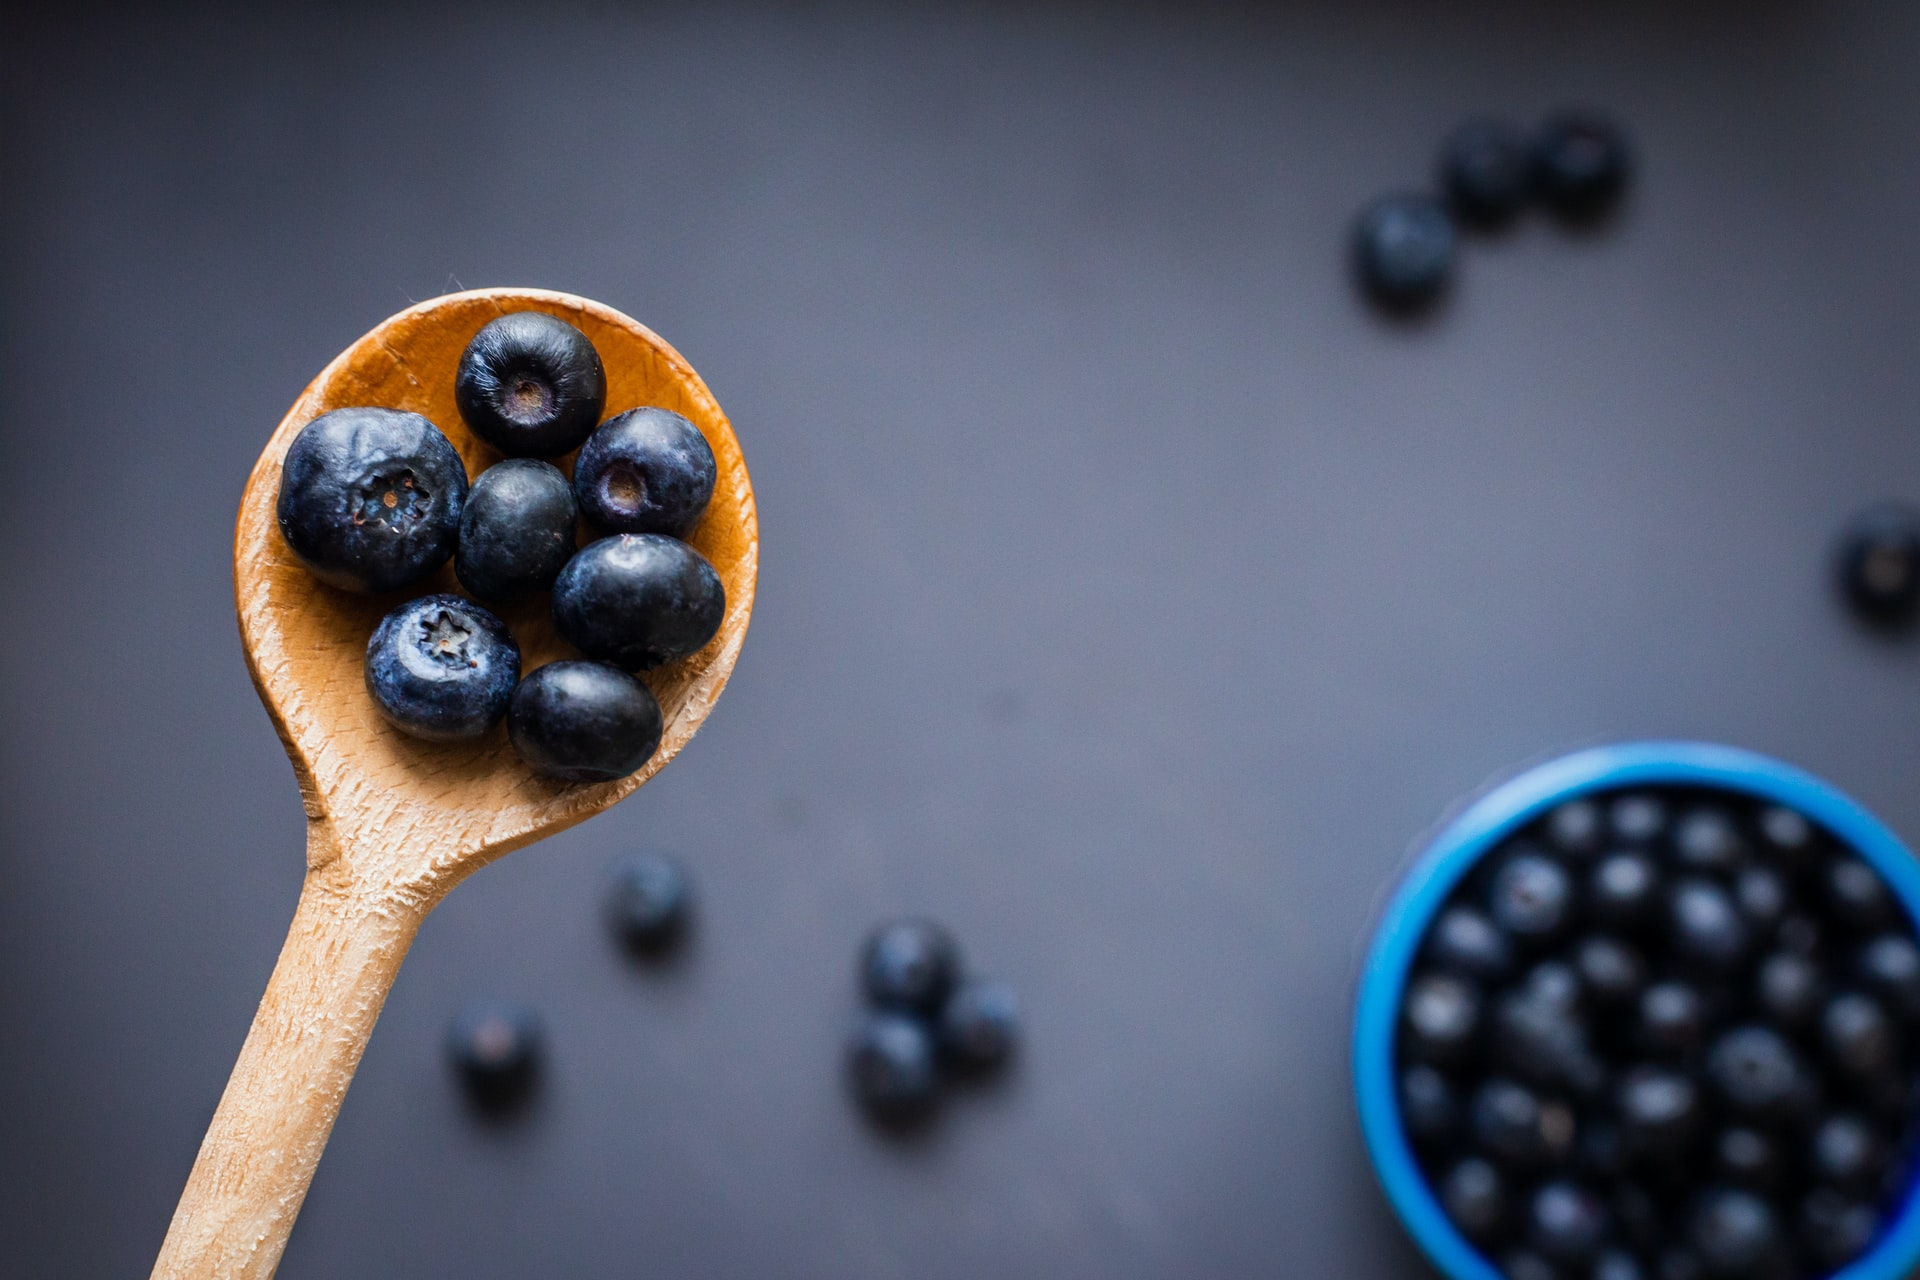 bowl and spoon of blueberries on purple backdrop